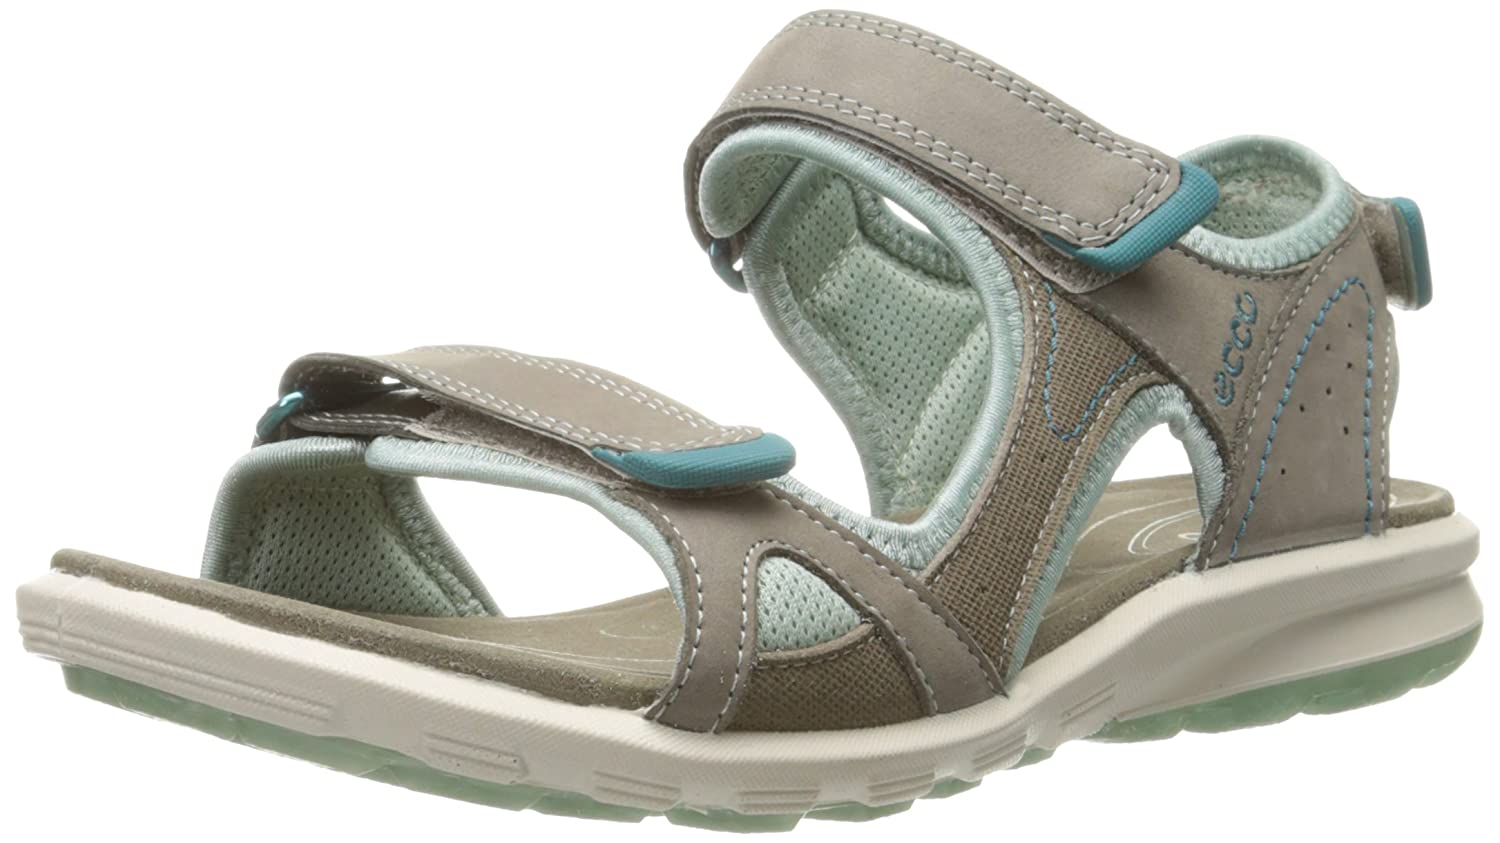 Amazon.com | ECCO Women's Cruise Sport Sandal, Warm Grey, 36 EU/5-5.5 M US  | Sport Sandals & Slides